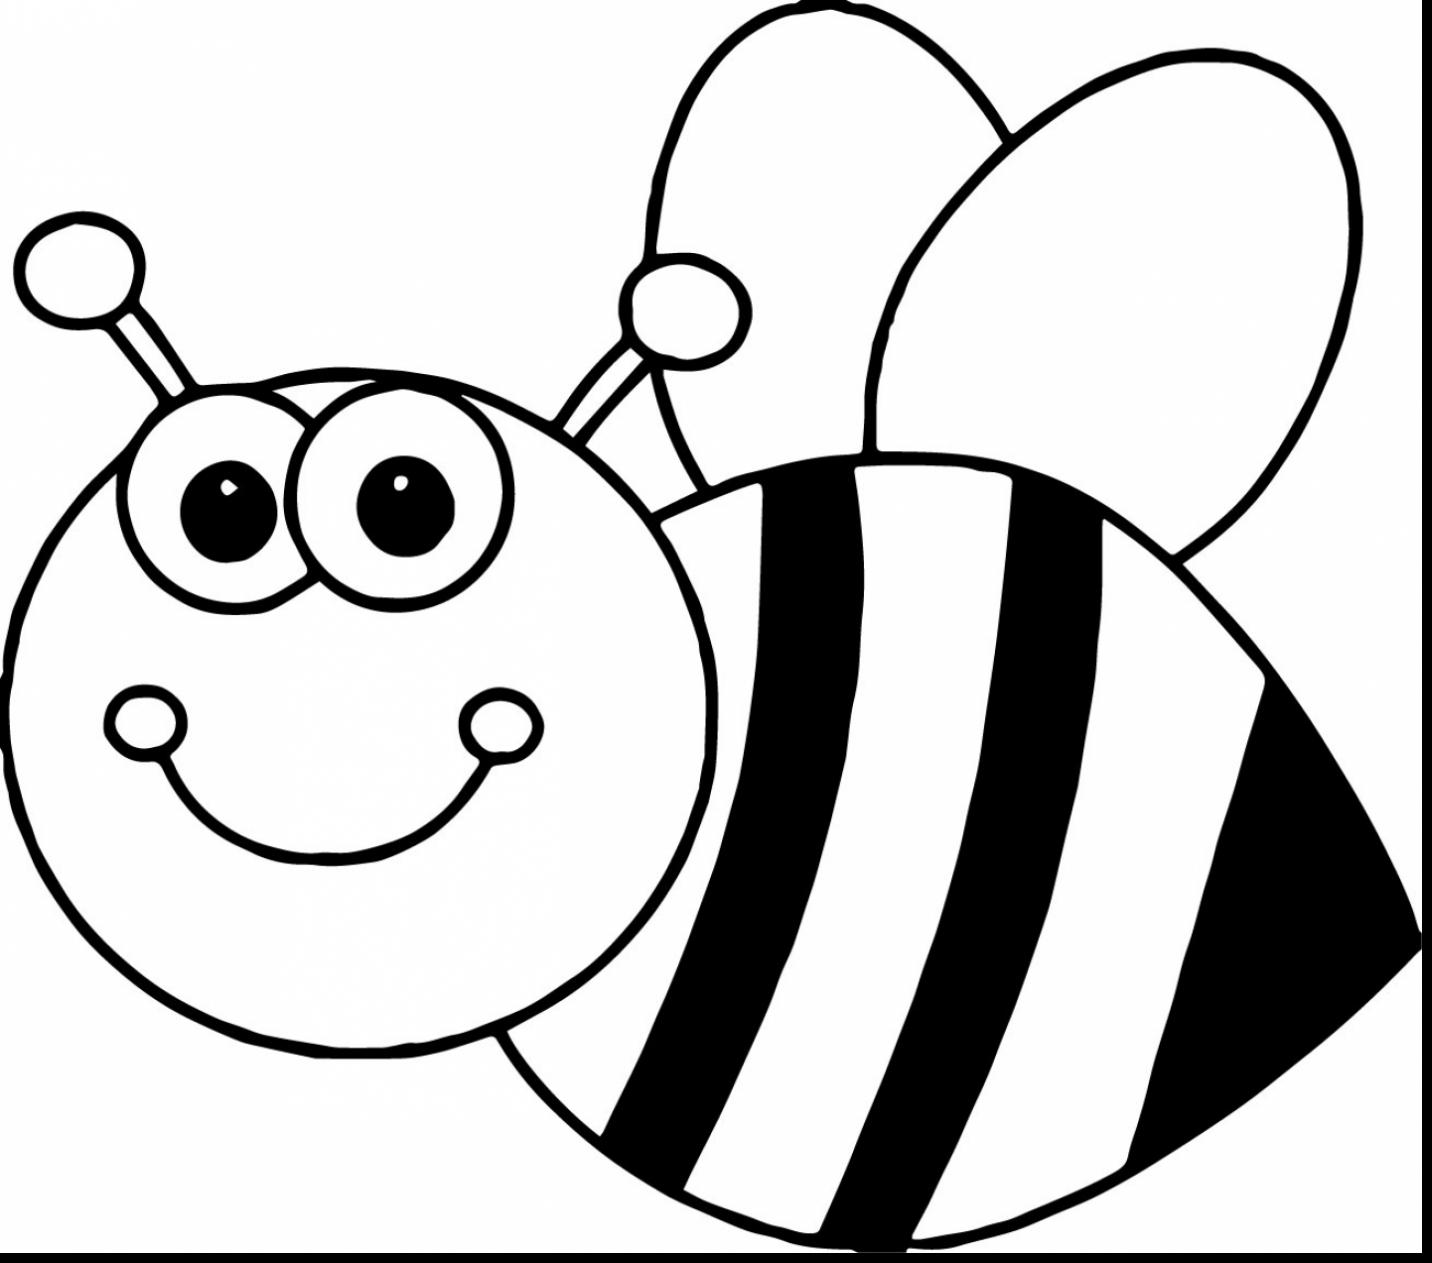 honey bee coloring sheet bumble bee coloring pages clipart best coloring bee sheet honey